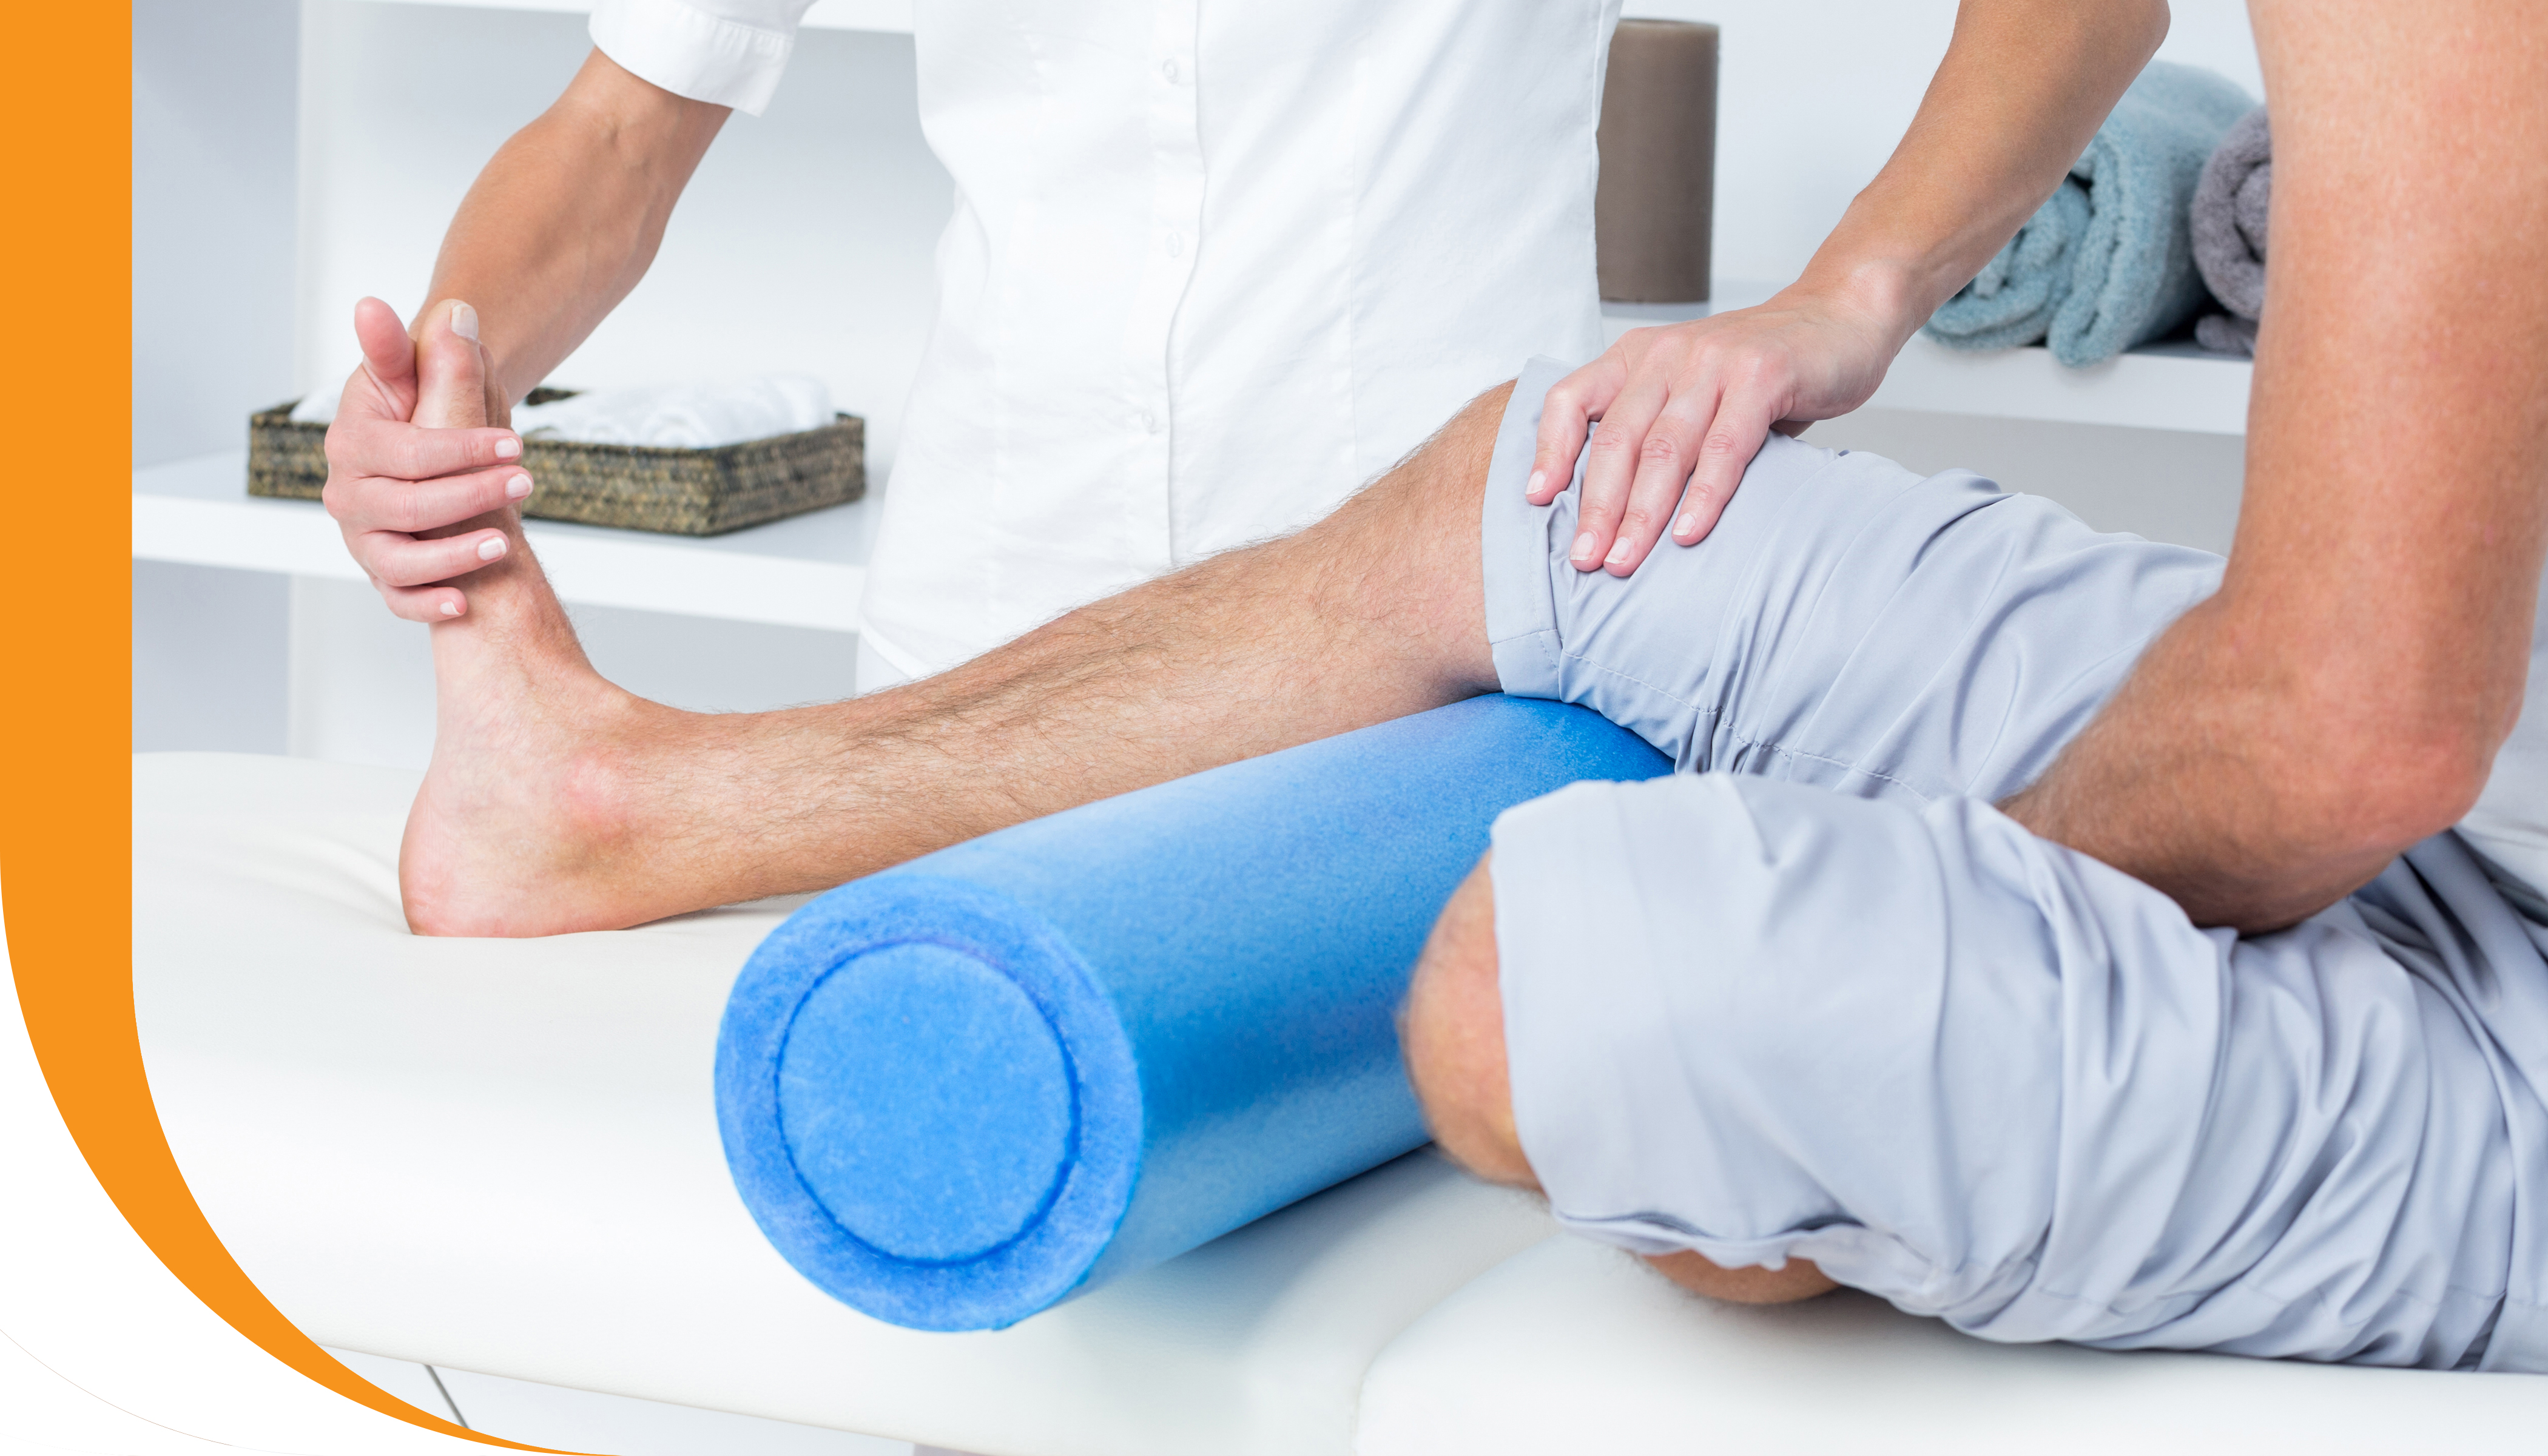 A physiotherapist performing a stretch on a patient's leg and foot.